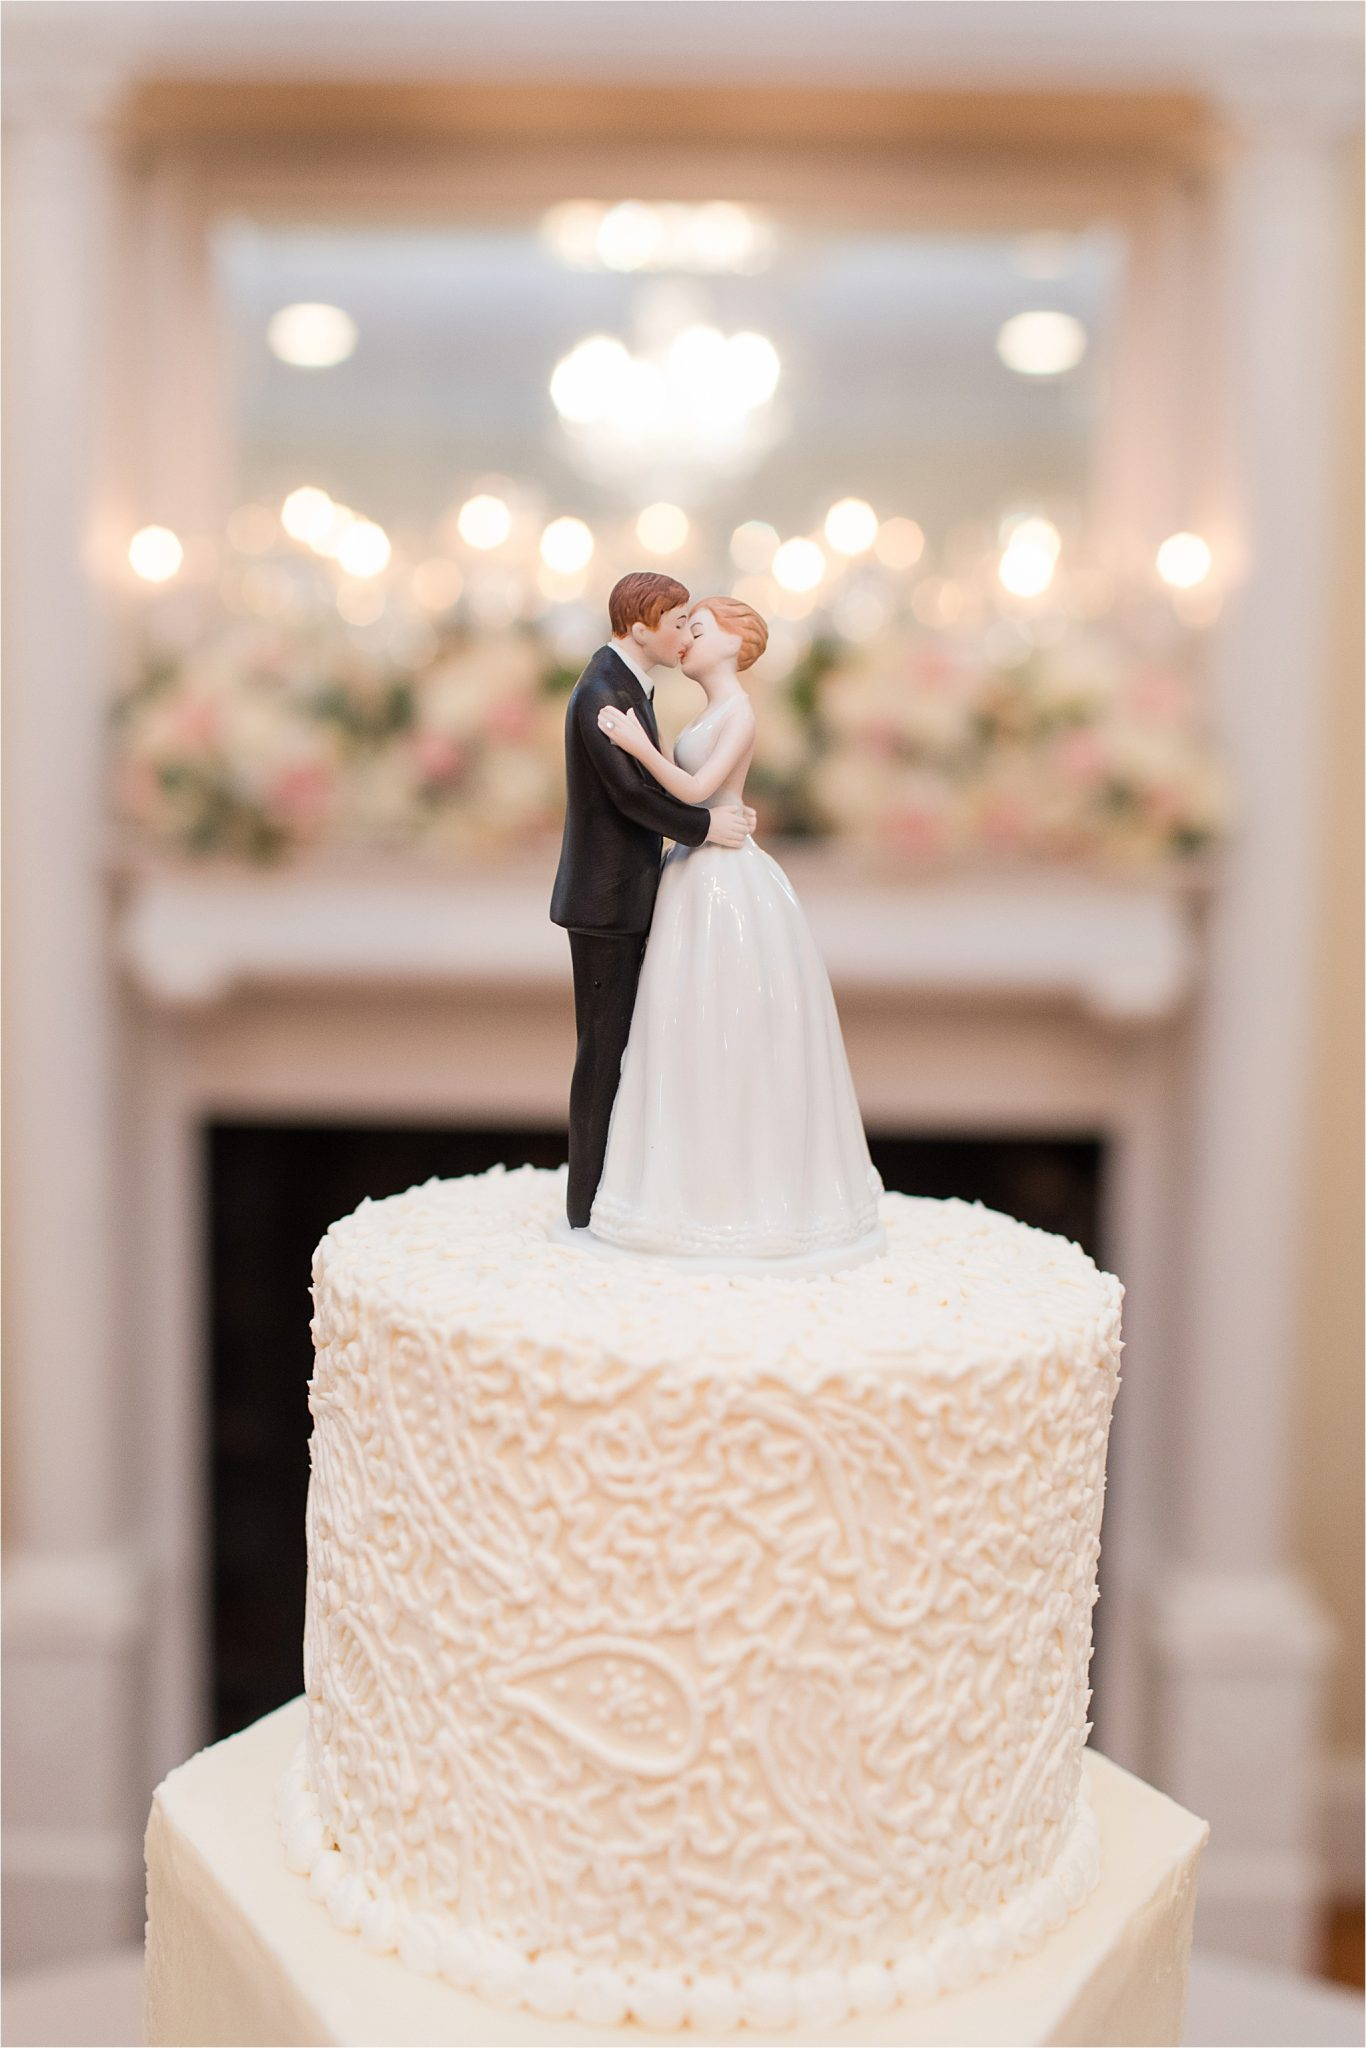 Sonnet House, Birmingham Alabama Wedding Photographer, Traditional wedding cake, Wedding dessert